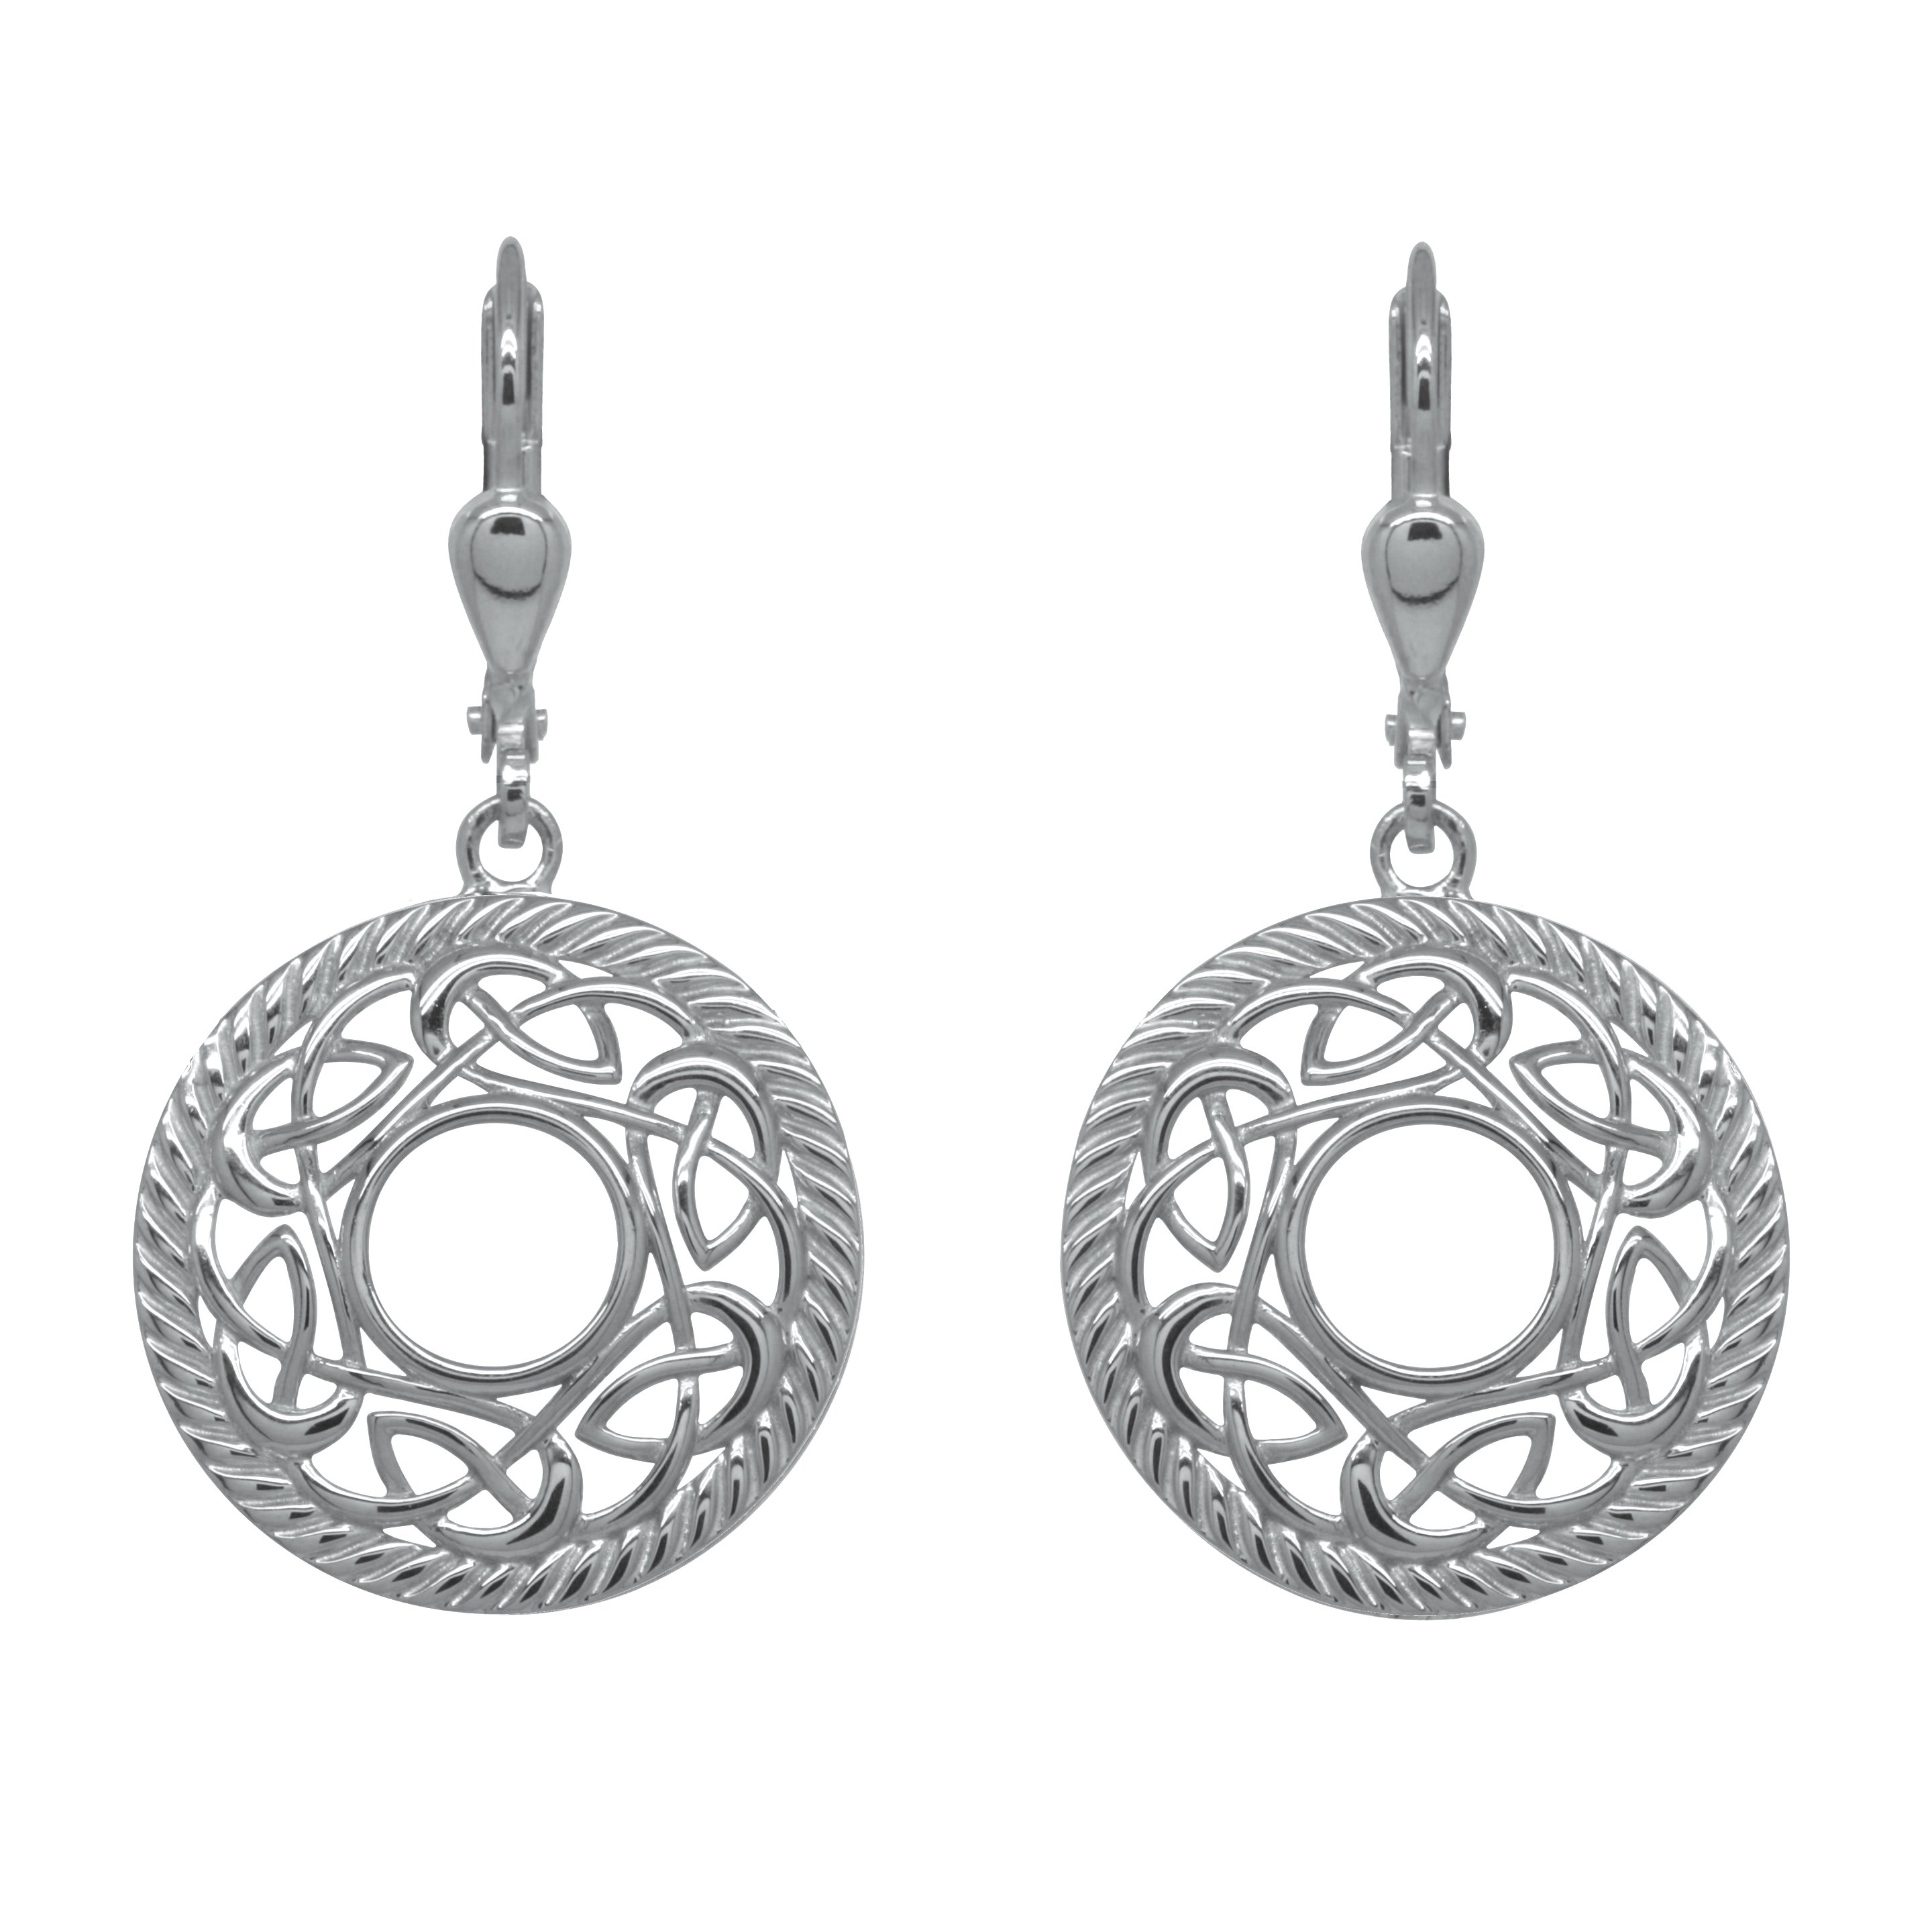 Irish Earrings | Rhodium Plated Sterling Silver Round Celtic Knot Earrings